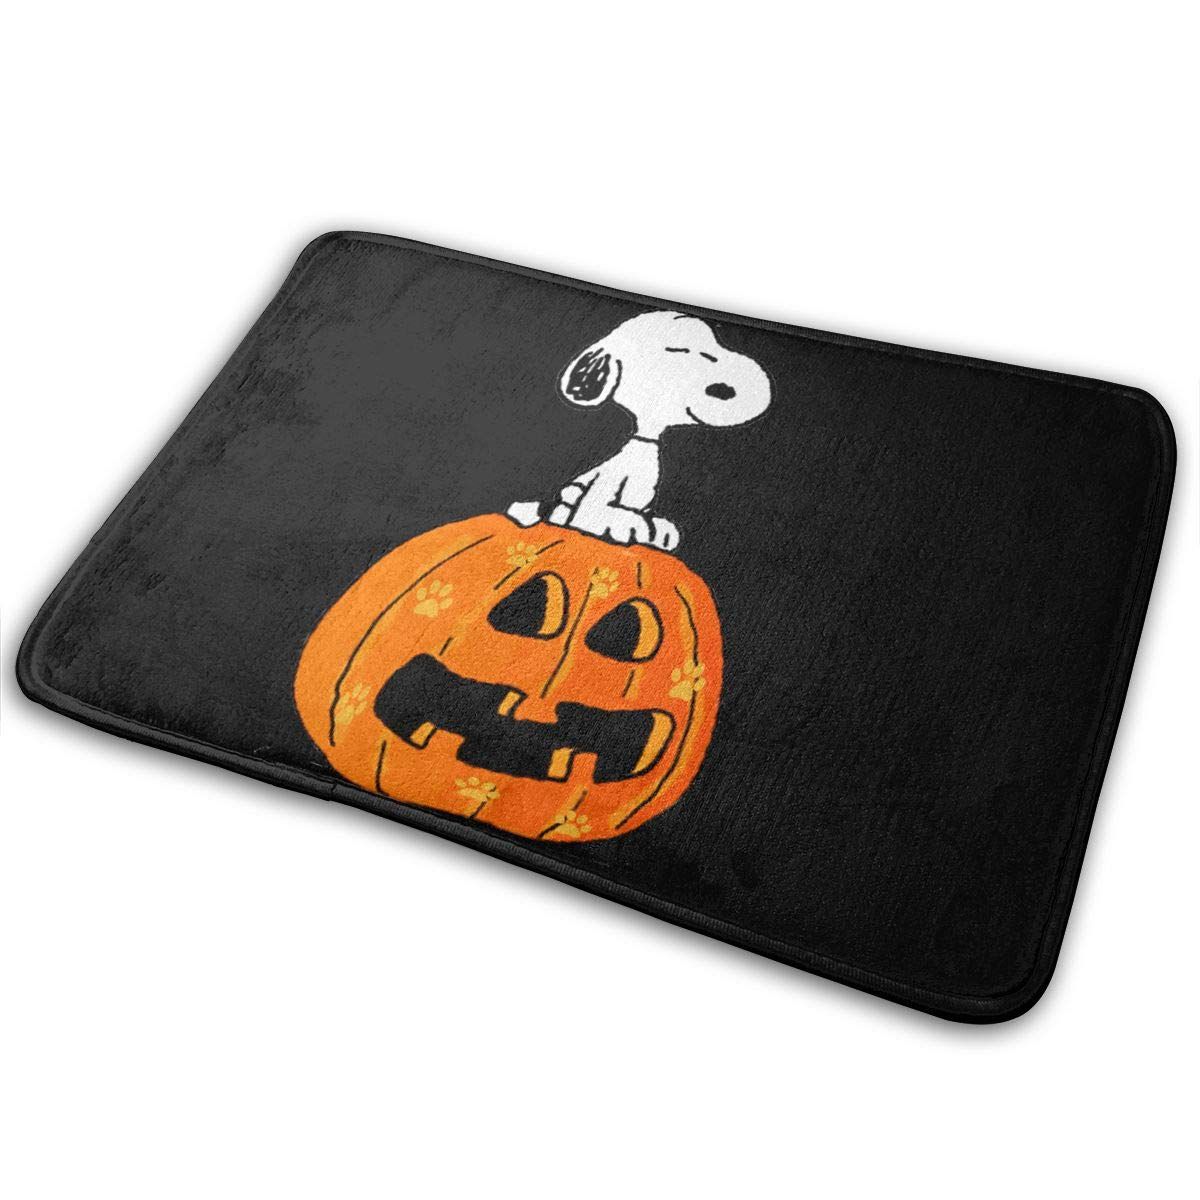 DIOWIYSls5uU Halloween Cute Snoopy Sitting On PumpkinFashion Non-Slip Floor Mat for All OccasionsWhite One Size